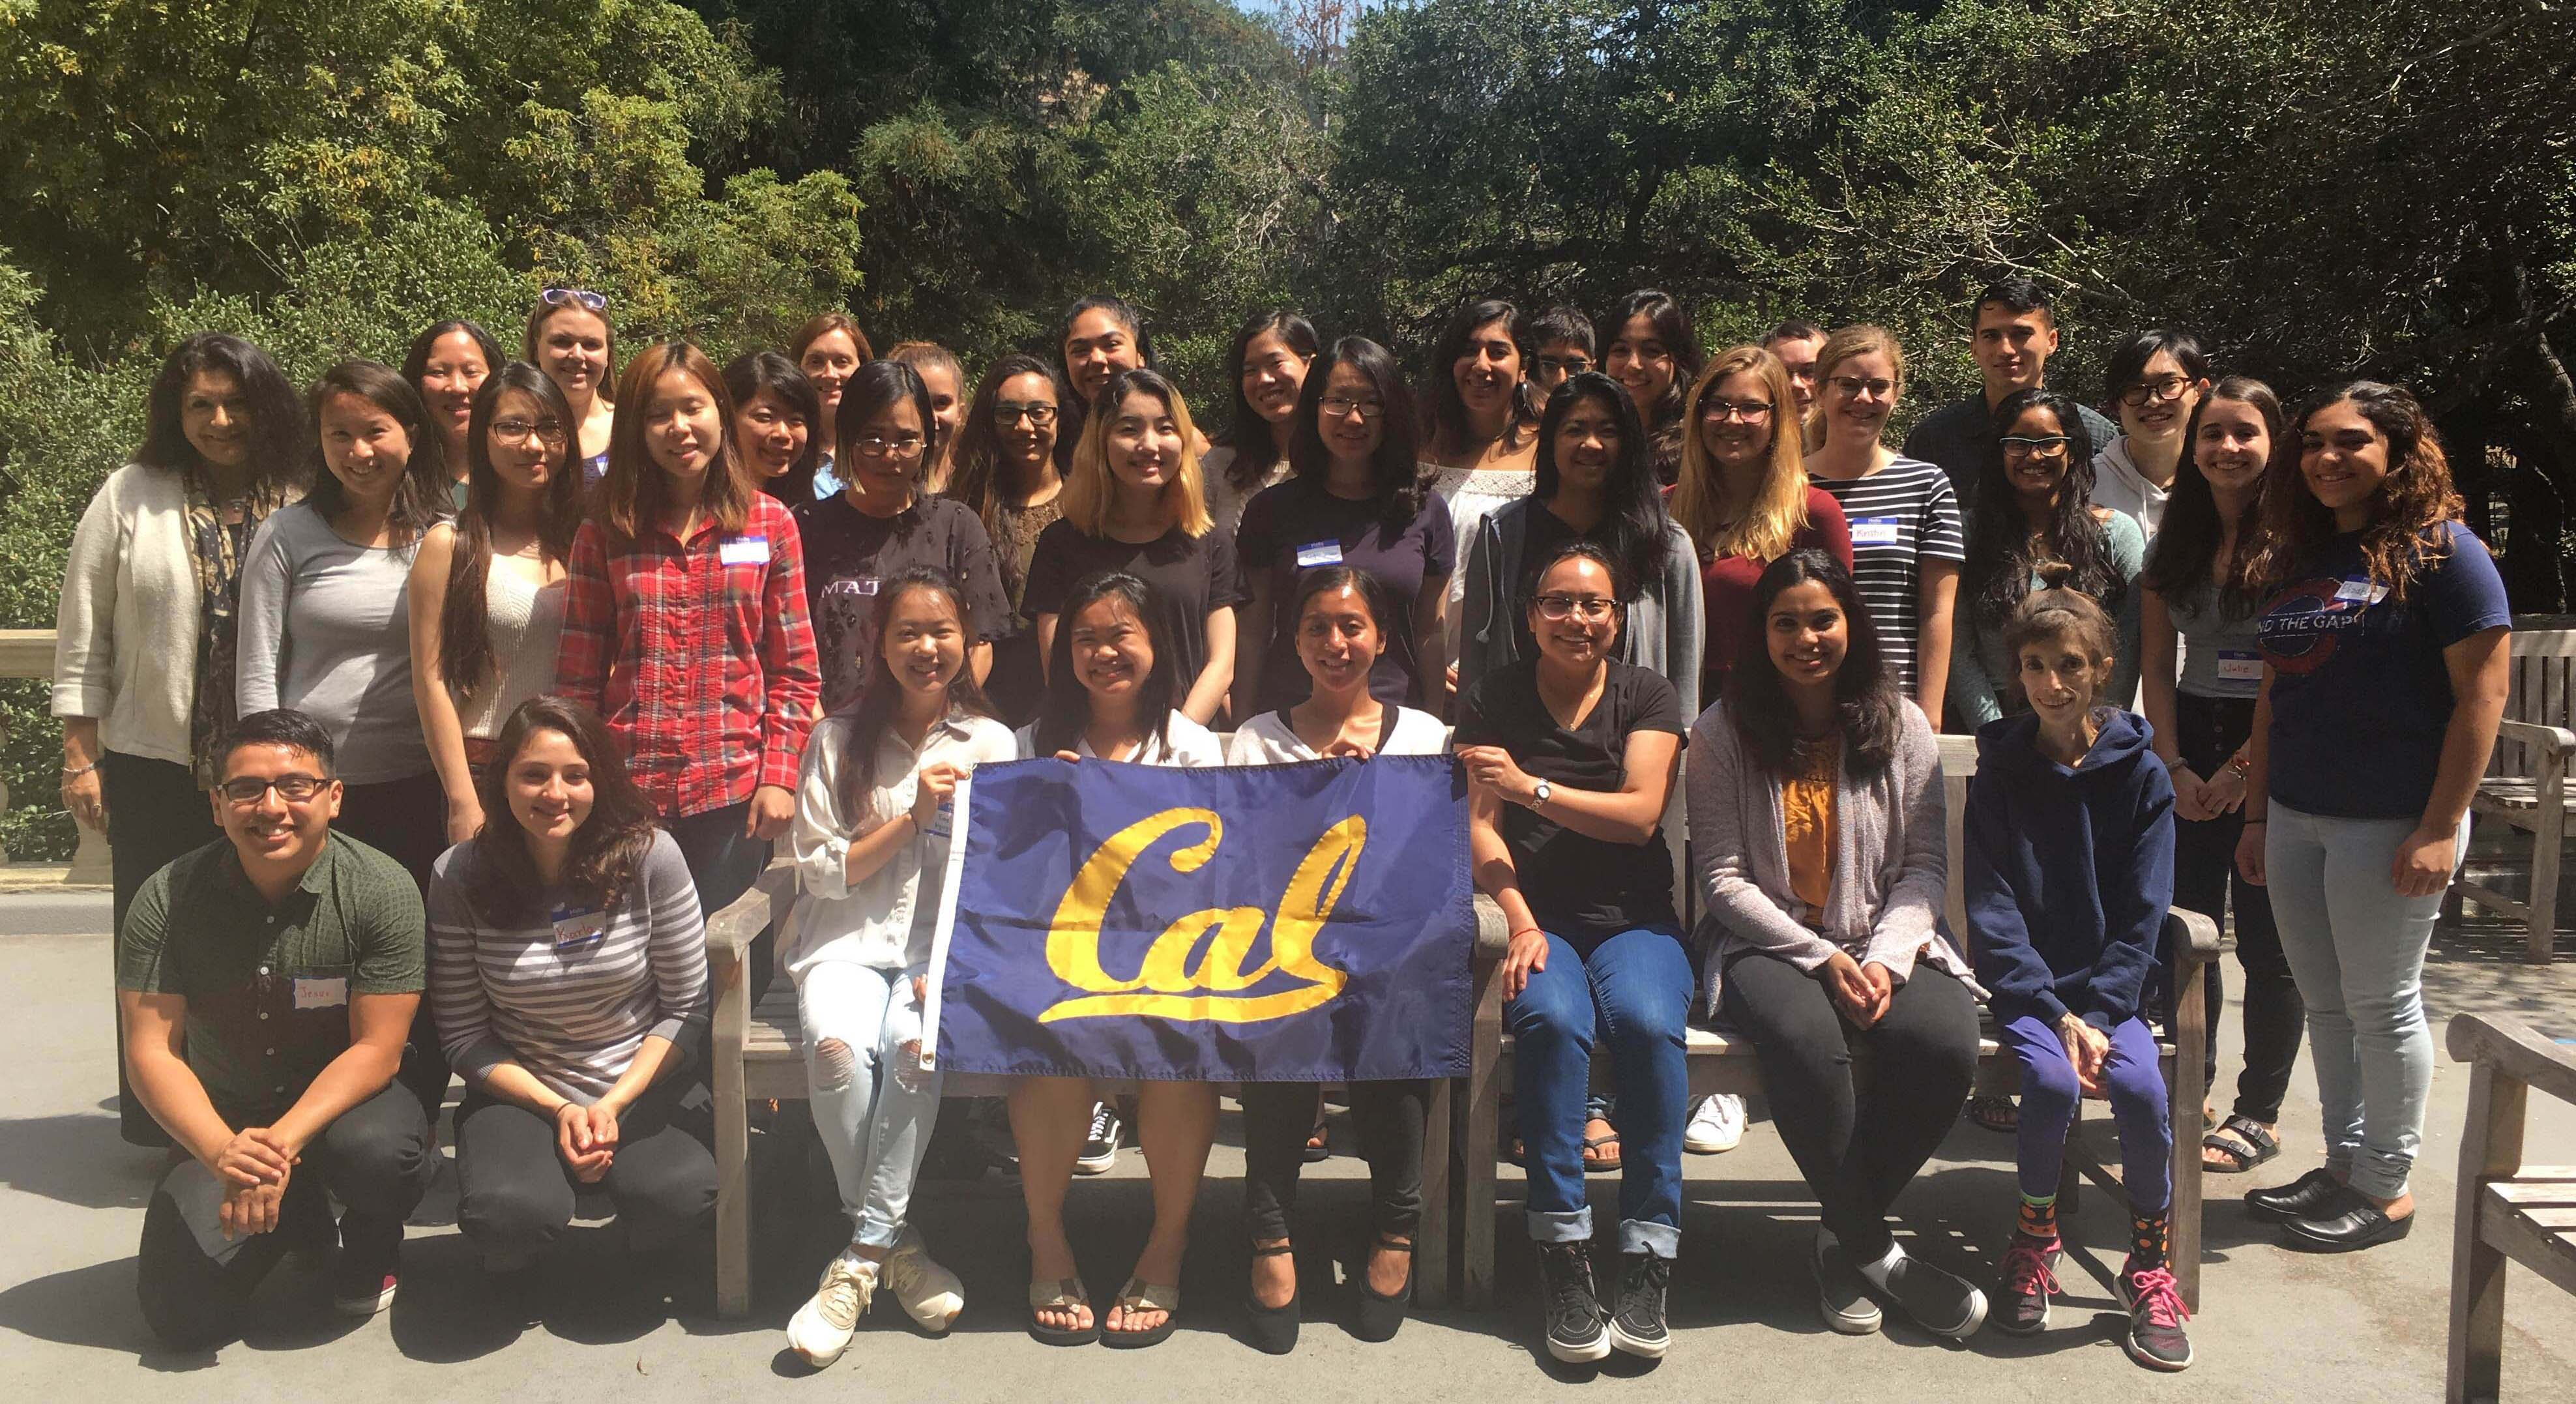 Large group of mostly female students posing for a photo holding a Cal banner on an outdoor patio with tall trees in the background at UC Berkeley.